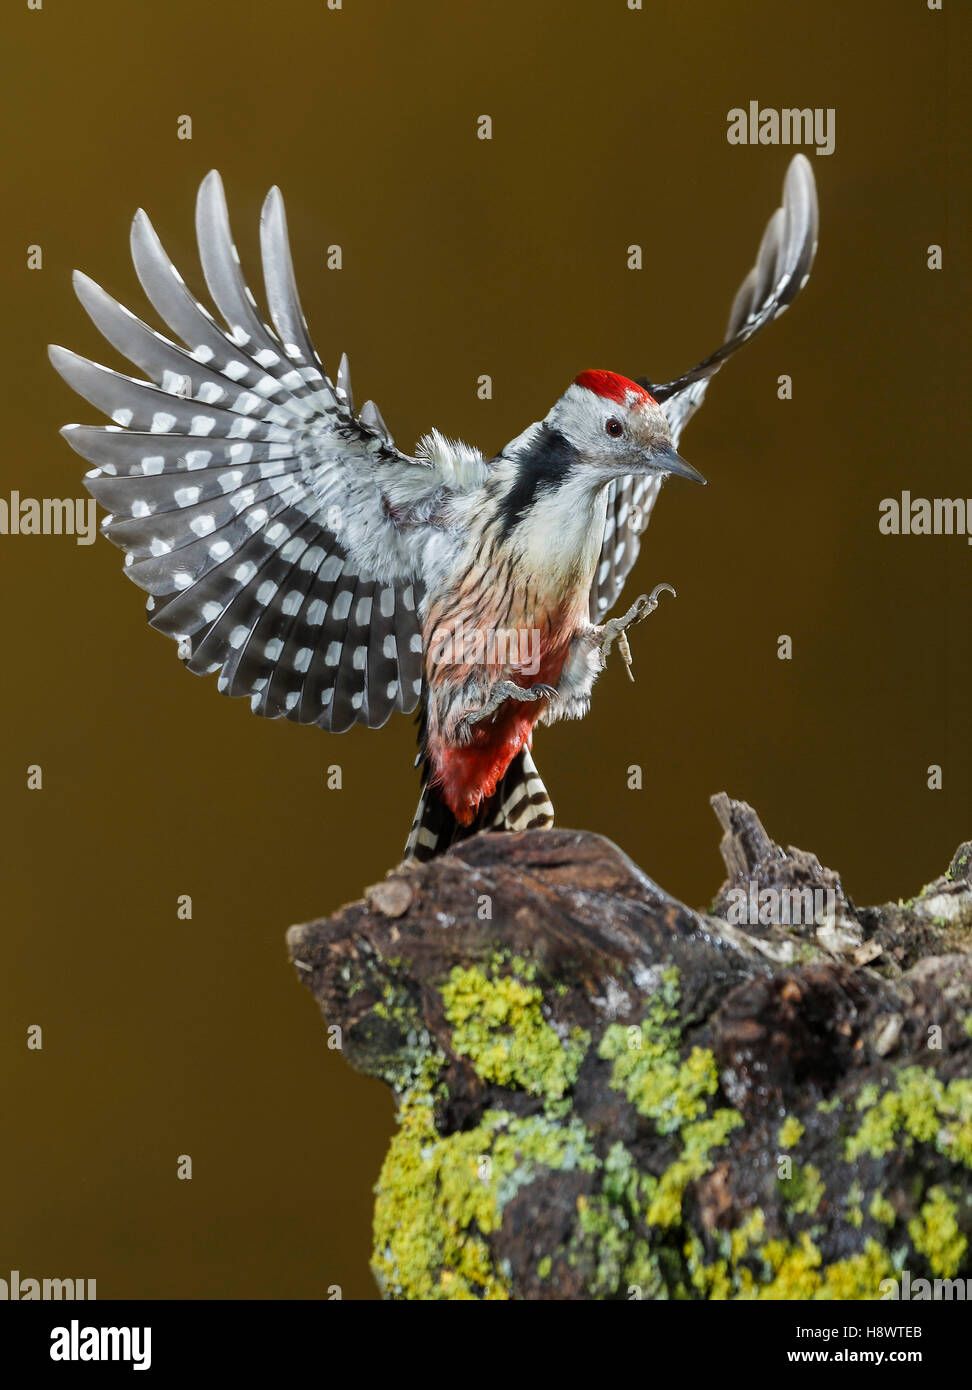 Middle Spotted Woodpecker (Dendrocoptes medius) landing on stump, Spain Stock Photo